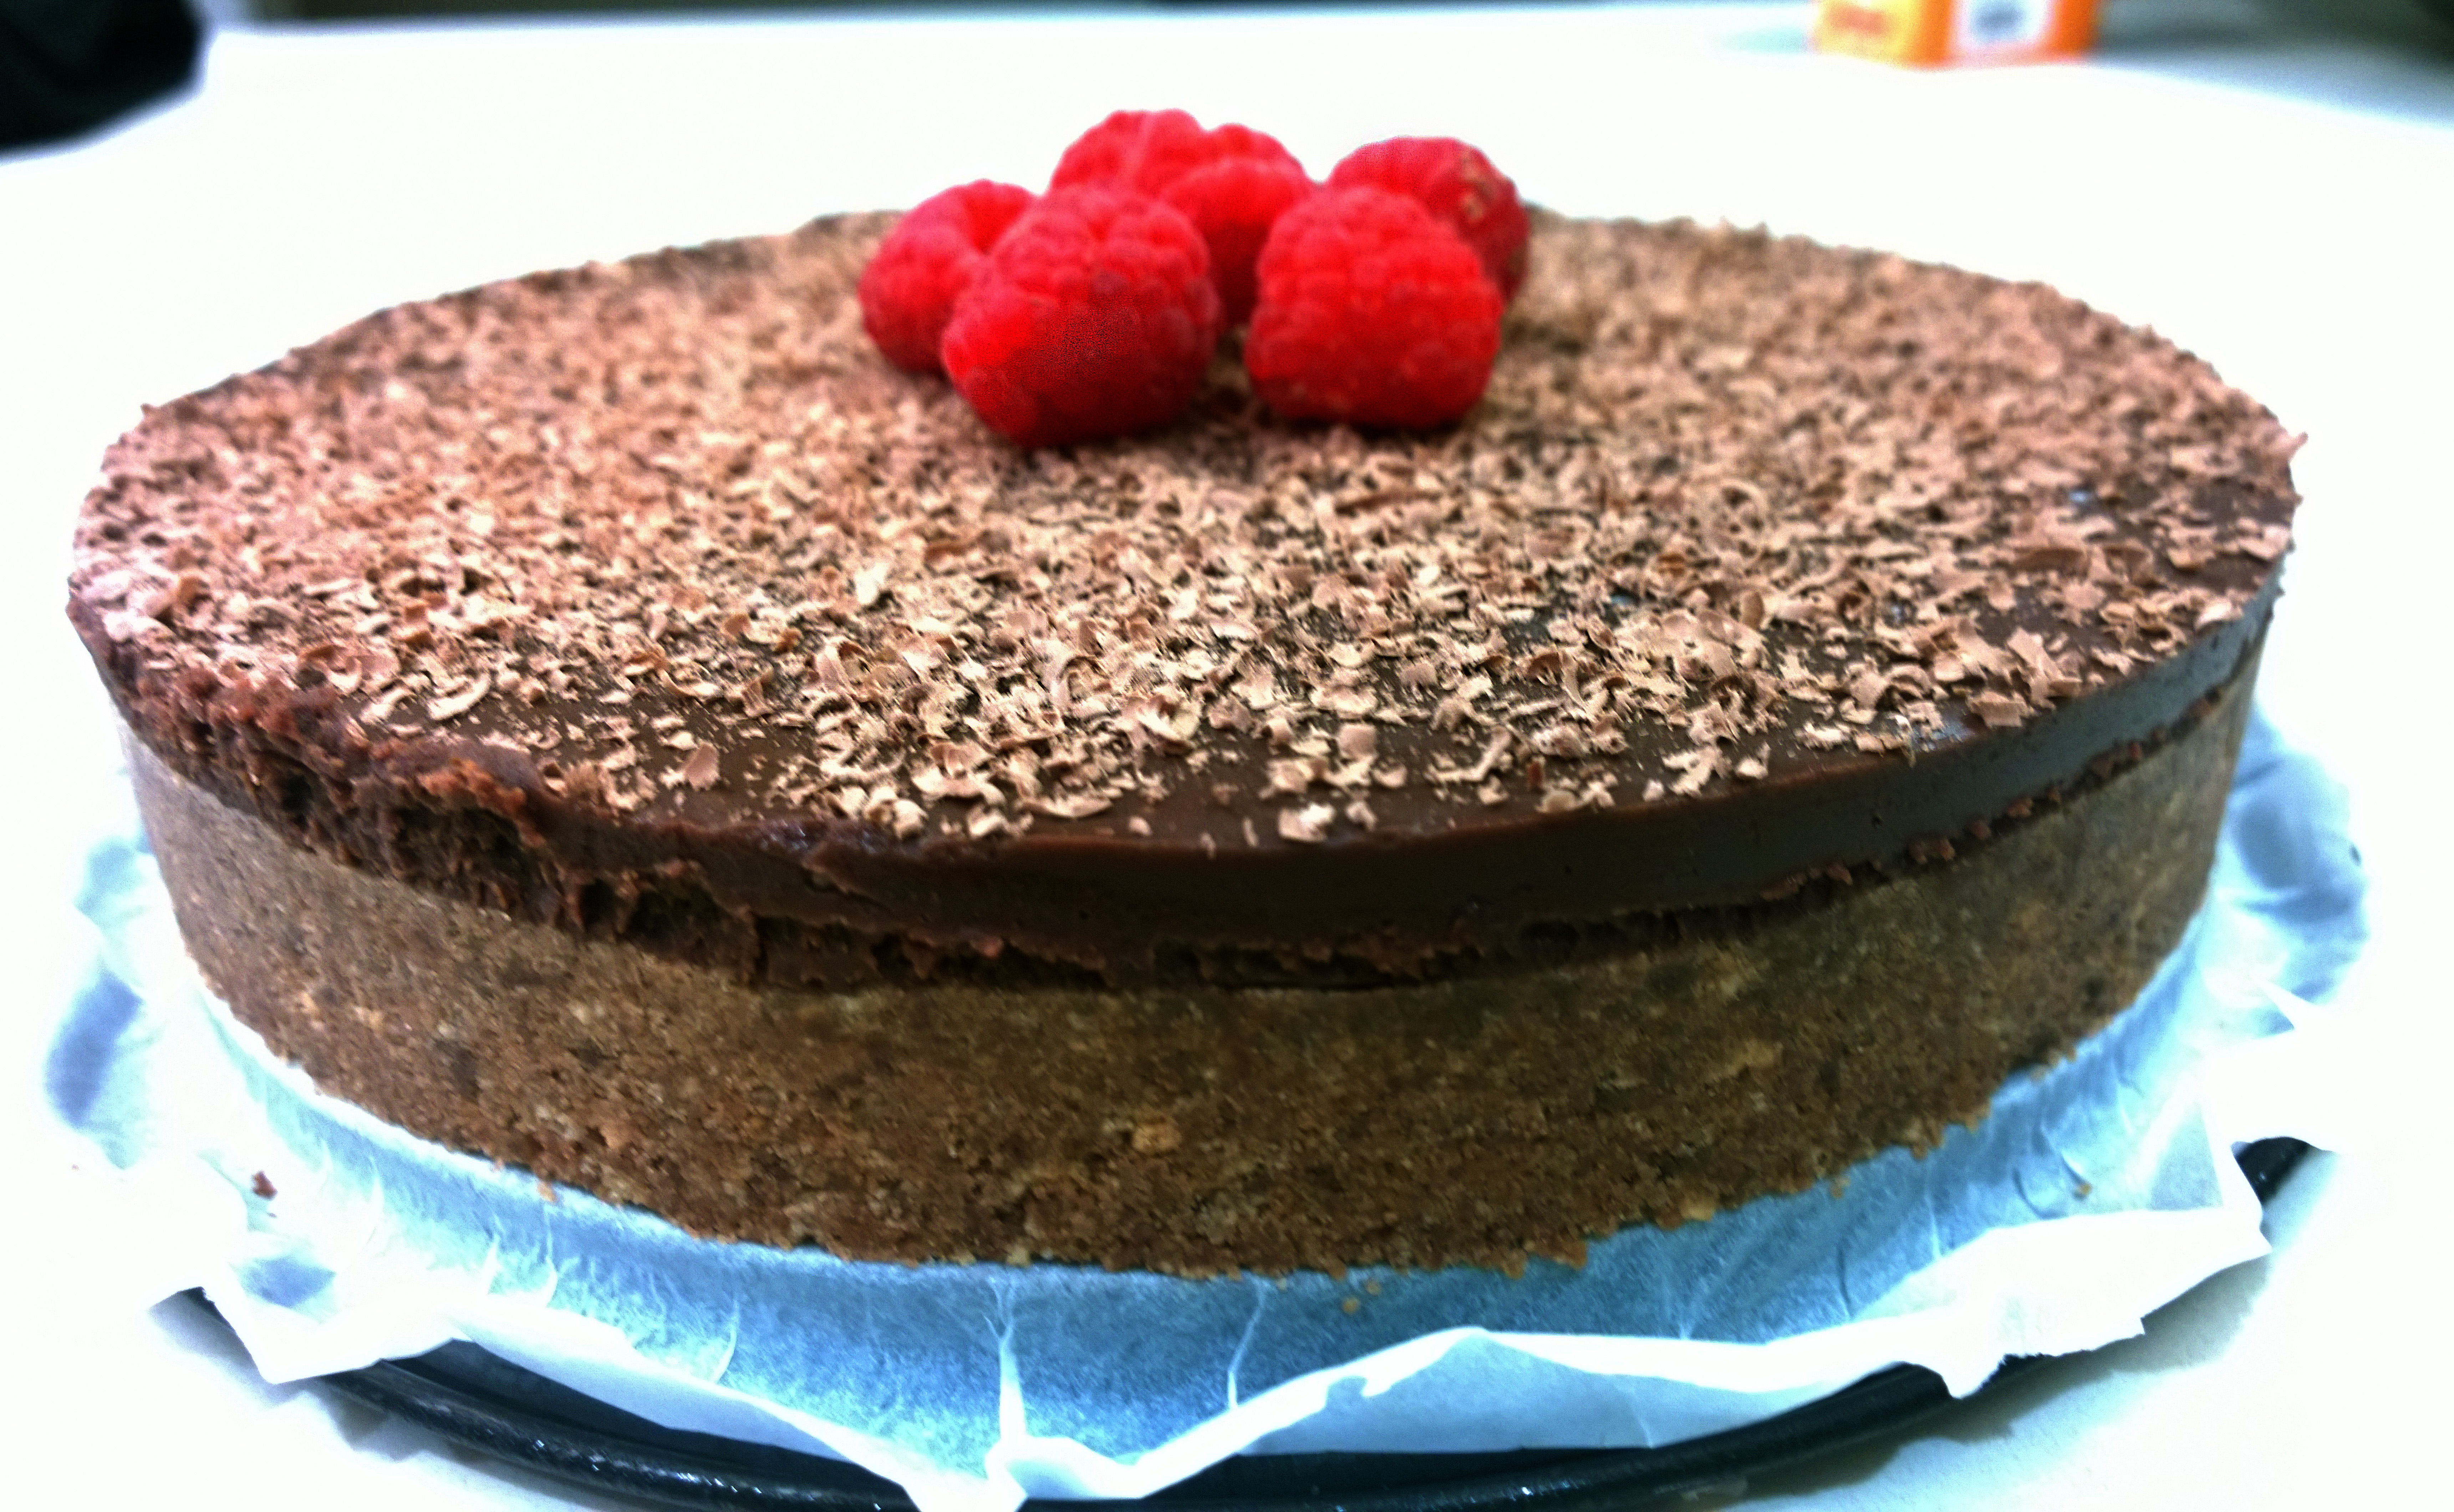 Chocolate Ganache Gateau